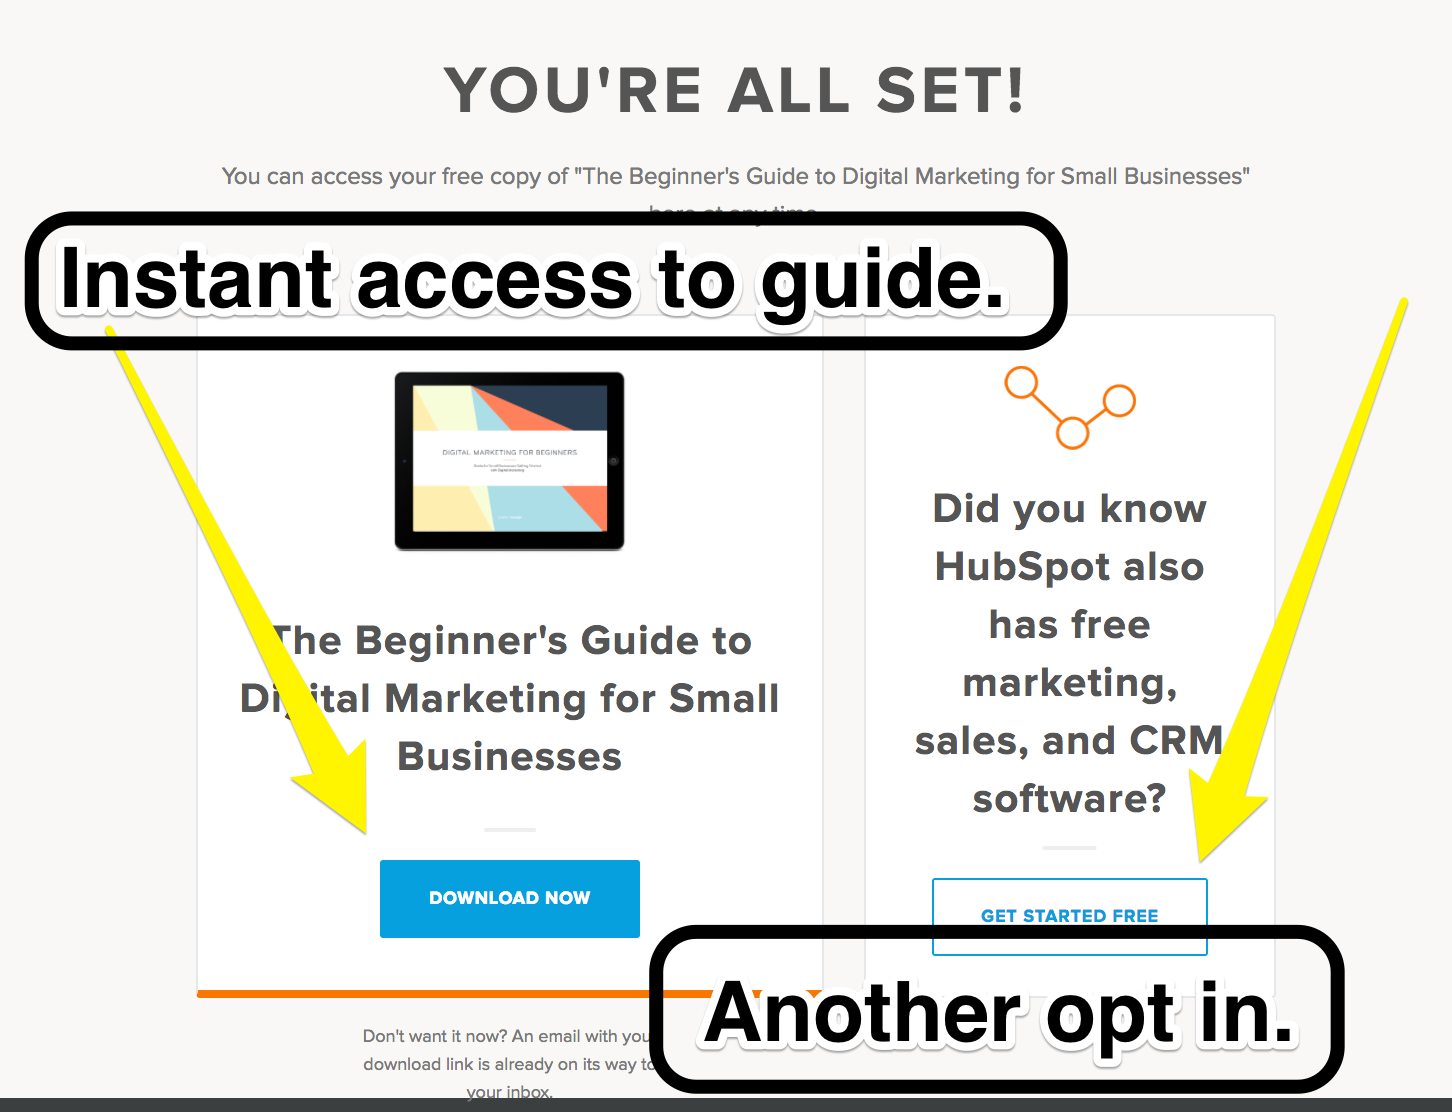 Screenshot showing the confirmation page for a hubspot opt-in